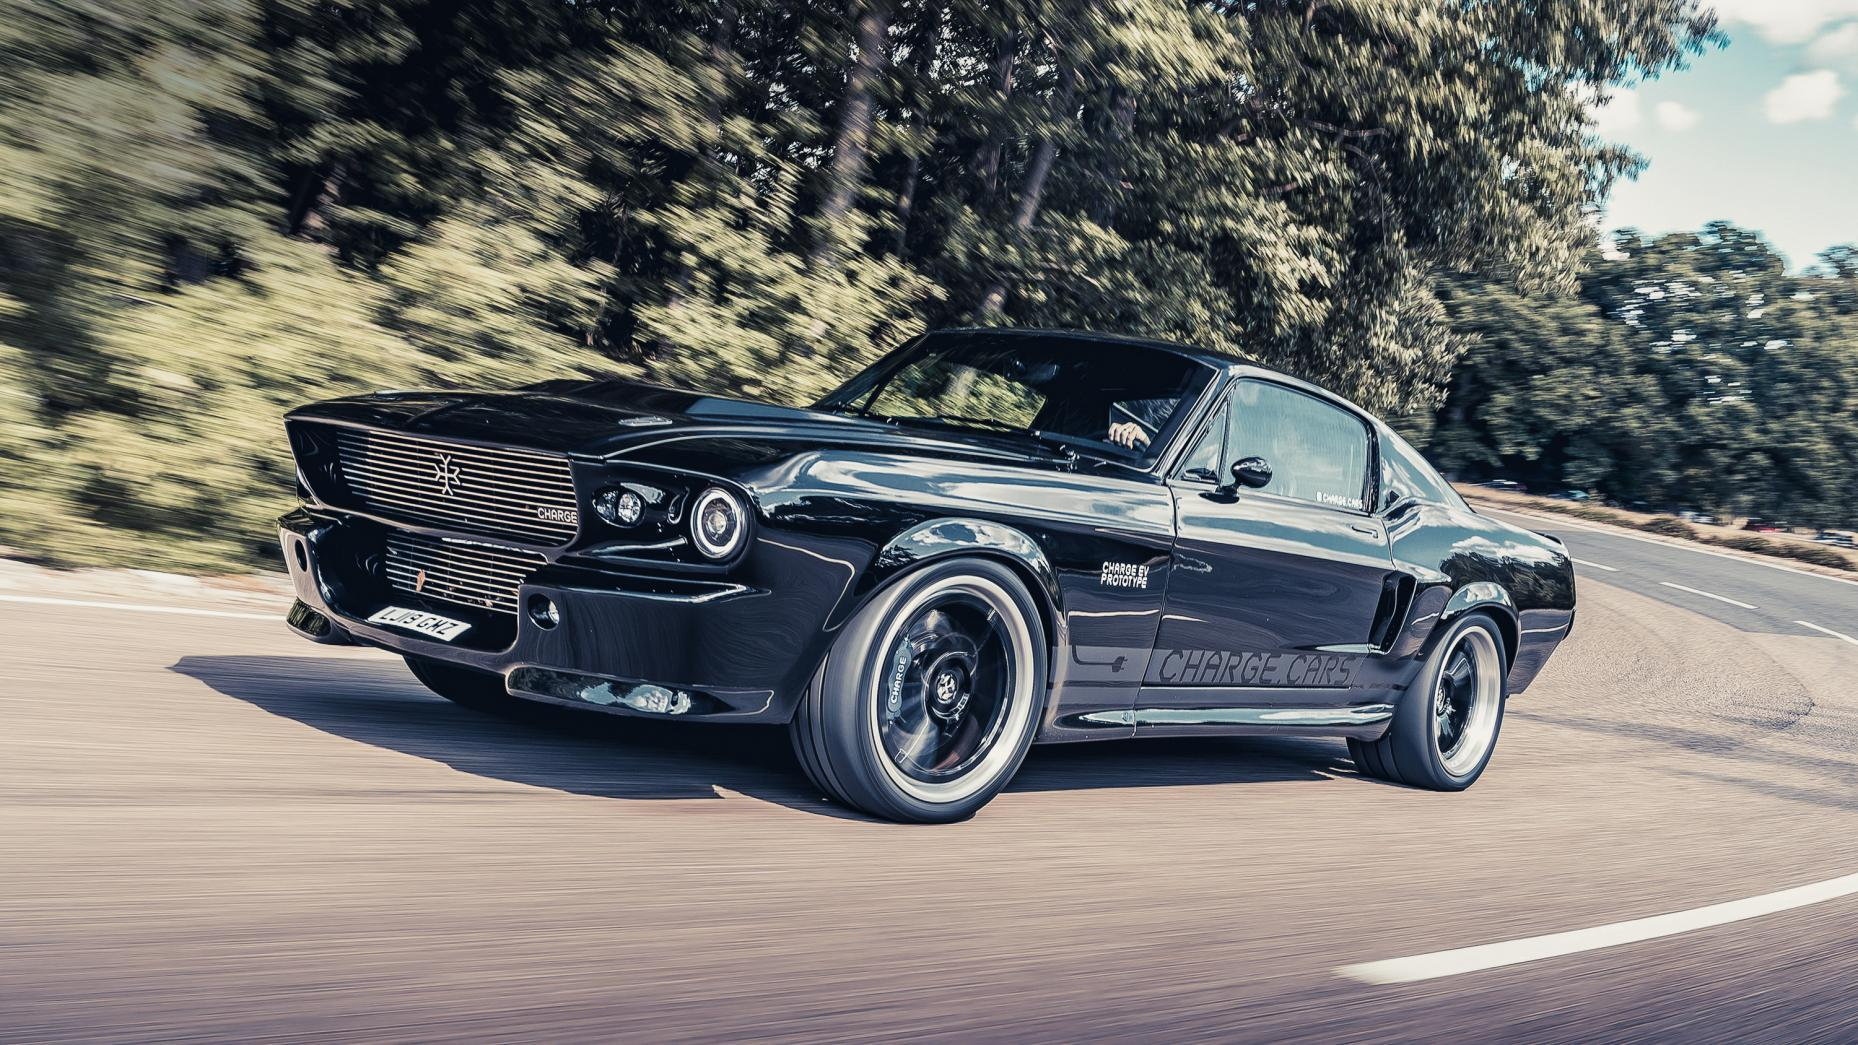 Ford Mustang Eleanor Charge